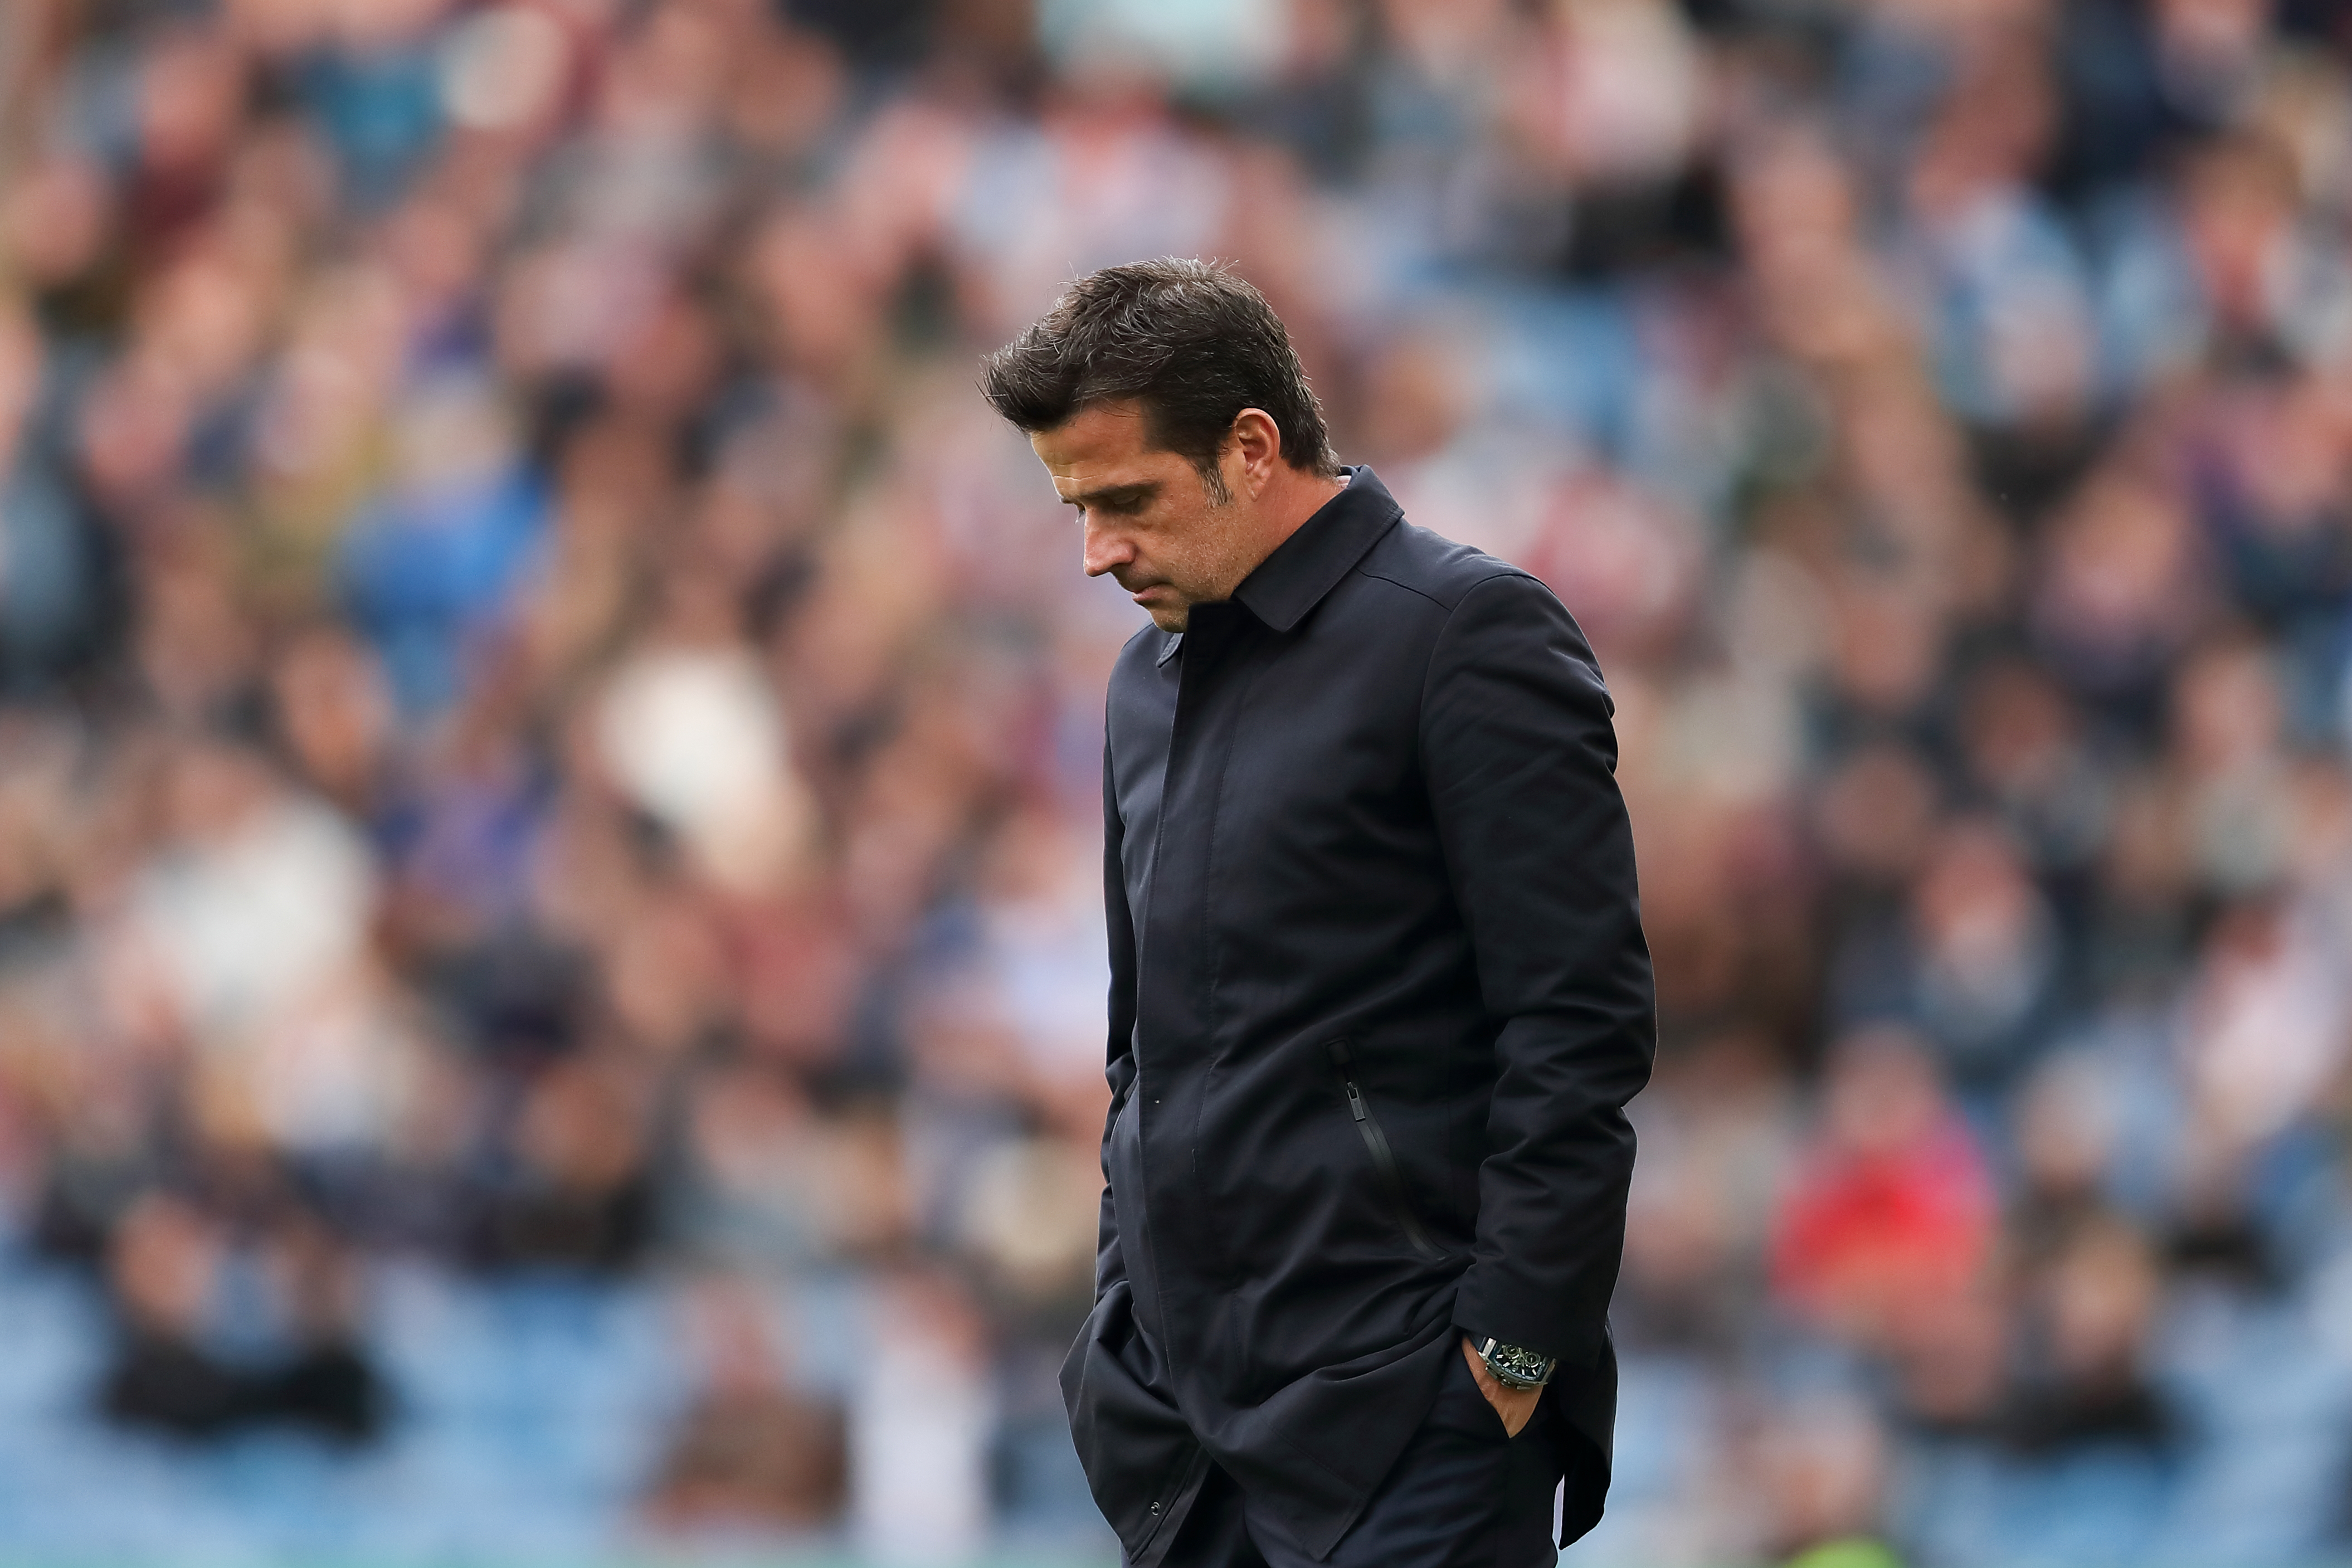 Everton vs West Ham Match Preview: Marco Silva on the brink